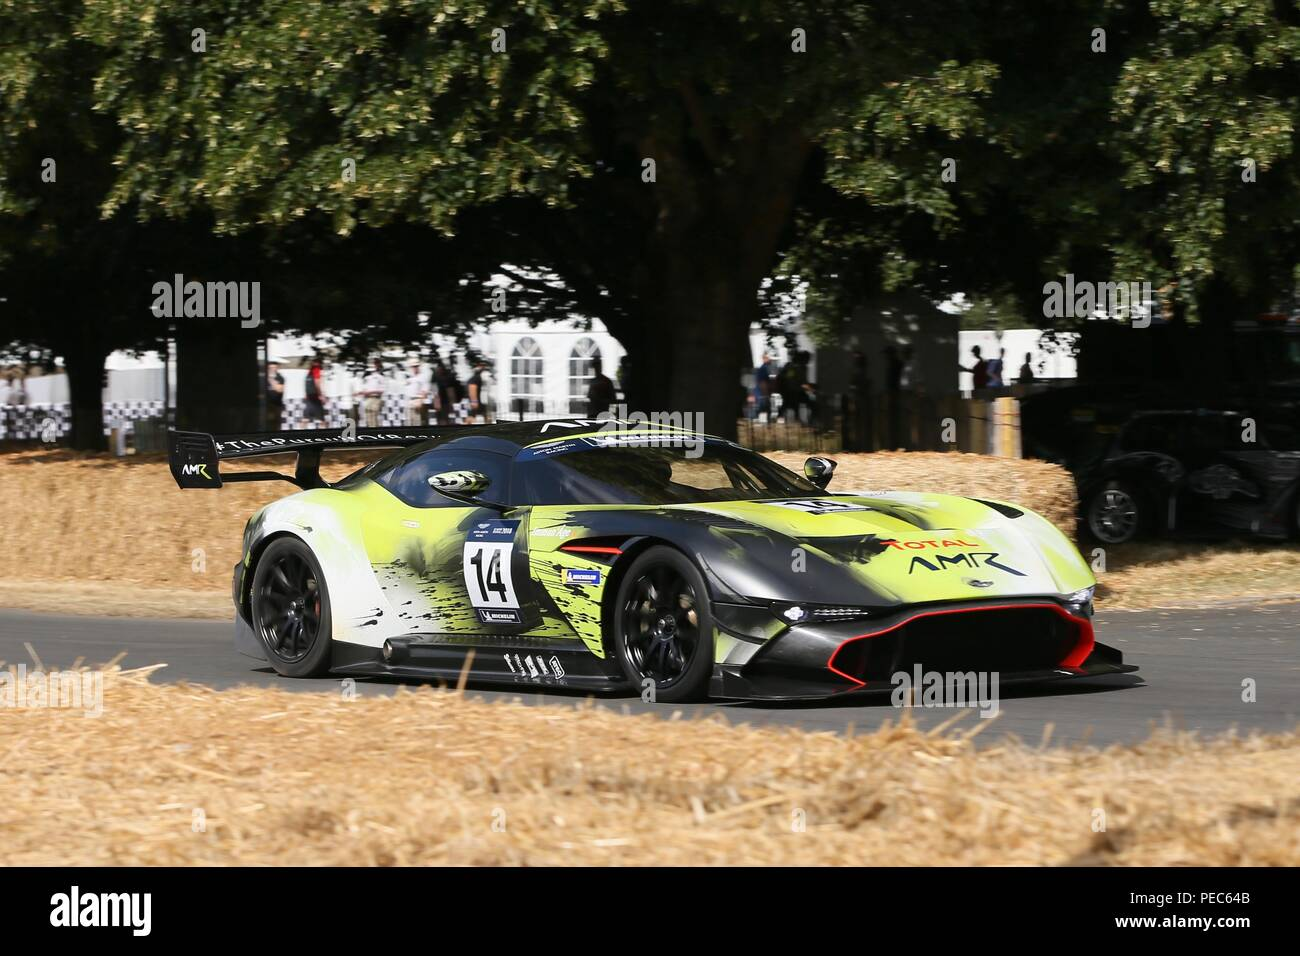 The Supercars take on the Hillclimb at Goodwood Festival of Speed on Day 1  Featuring: Aston Martin Vulcan AMR Where: London, United Kingdom When: 12 Jul 2018 Credit: Michael Wright/WENN.com - Stock Image